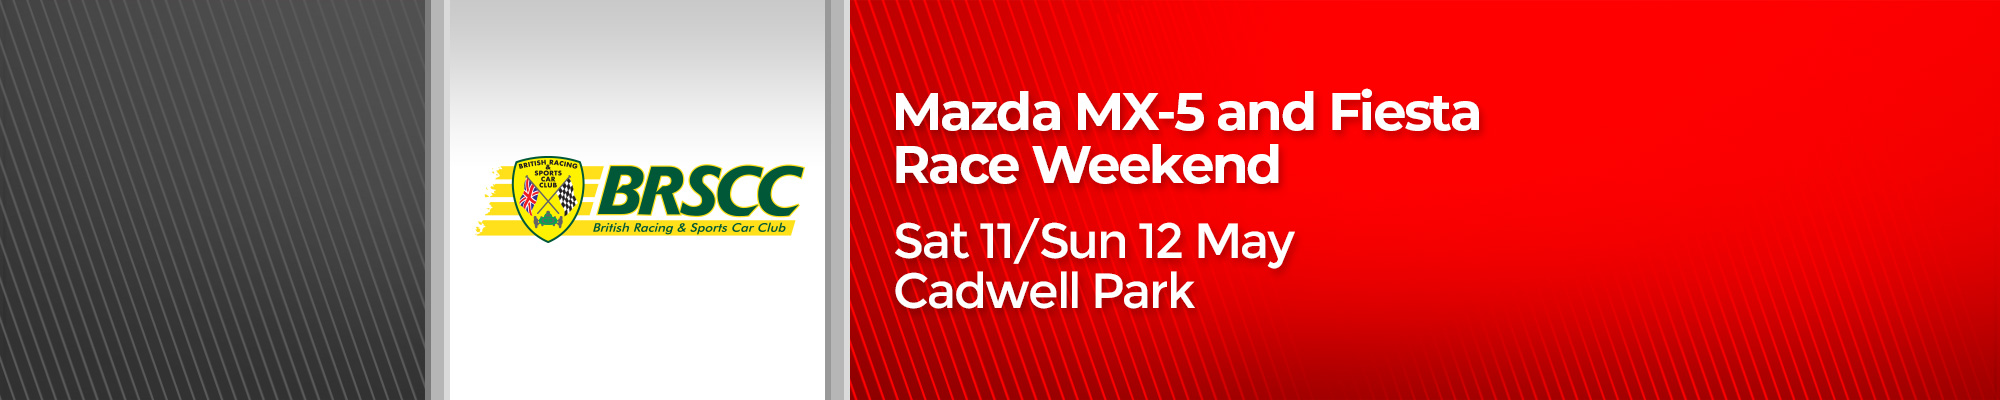 Mazda MX-5 and Fiesta Race Weekend